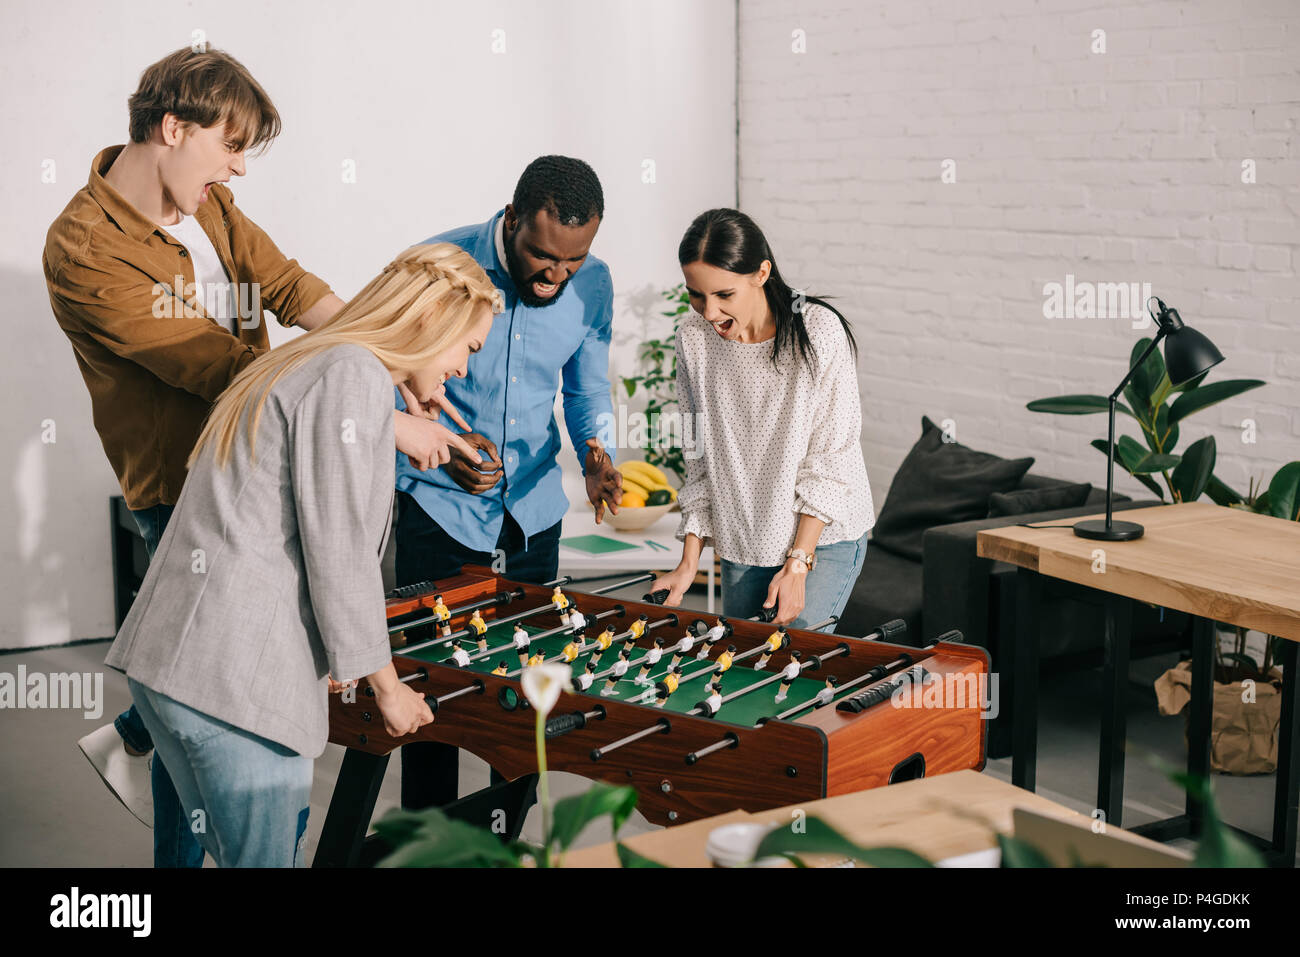 businesswomen playing table football and two male colleagues pointing on  board game - Stock Image 8f958a3b30